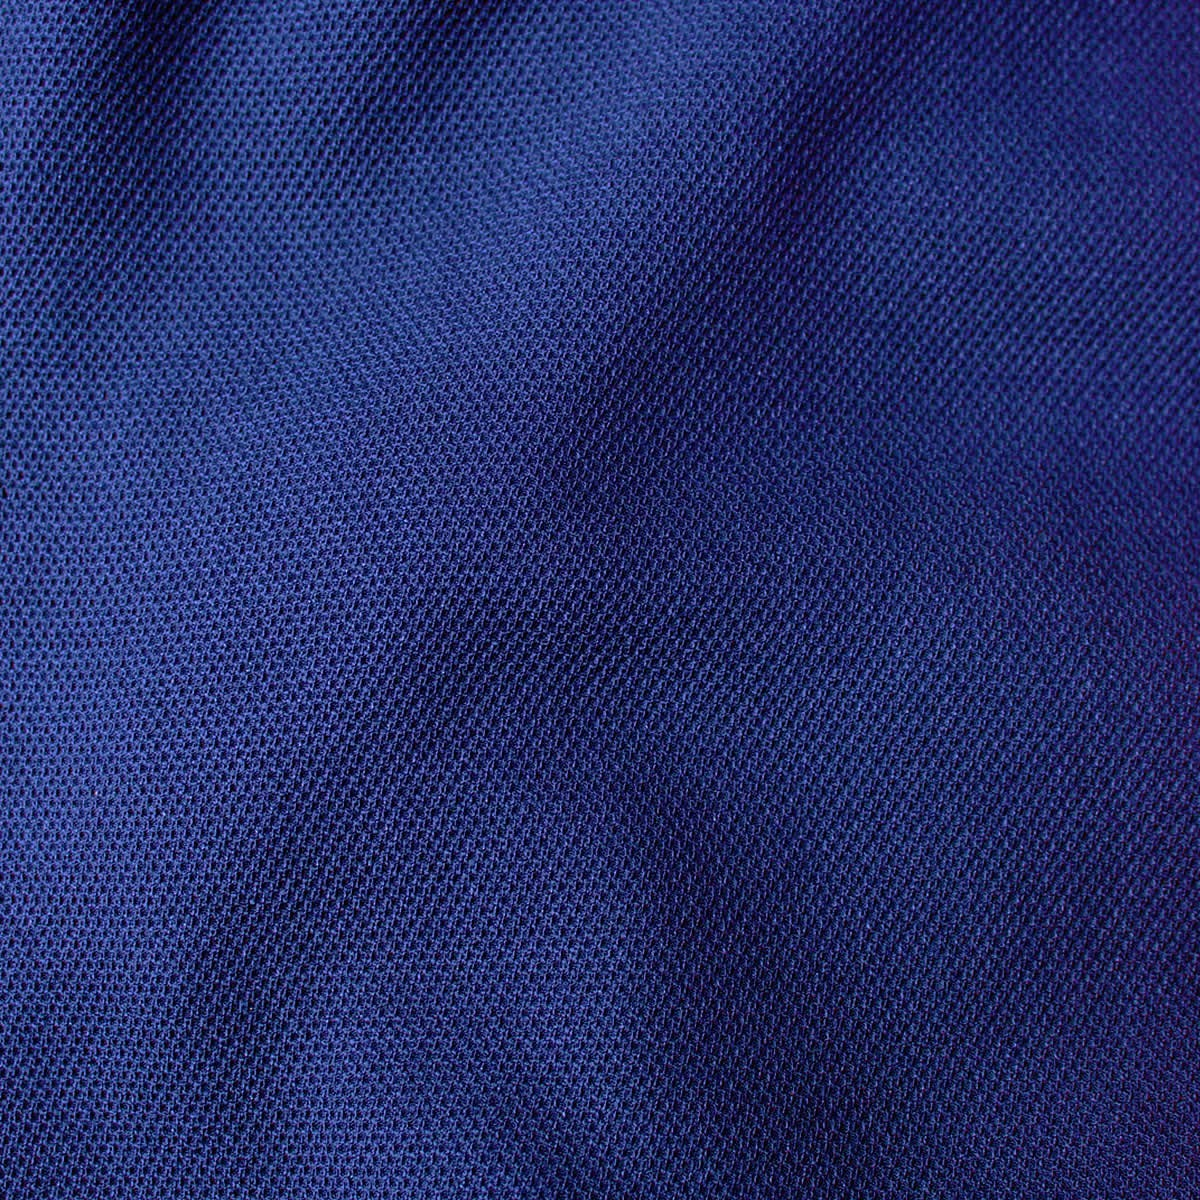 Acoustic Fabric for Loudspeakers Grill 150x100cm Dark Blue